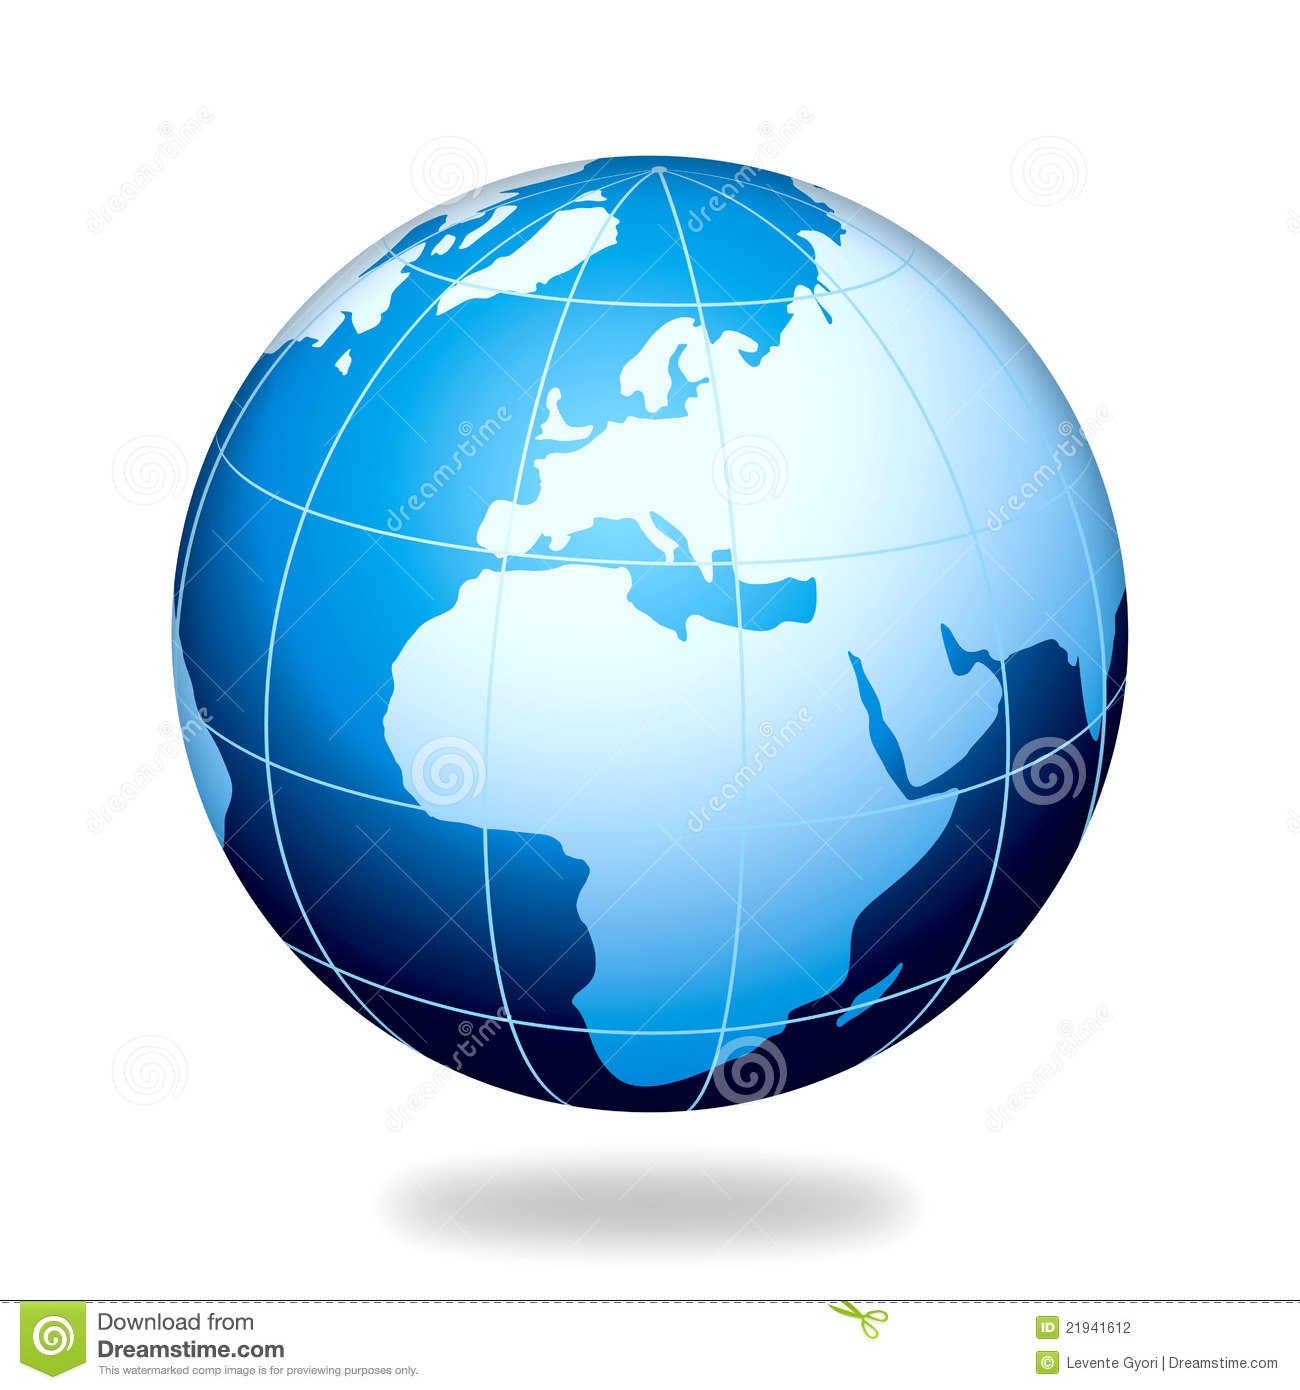 blue-earth-europe-internet-globe-21941612.jpg